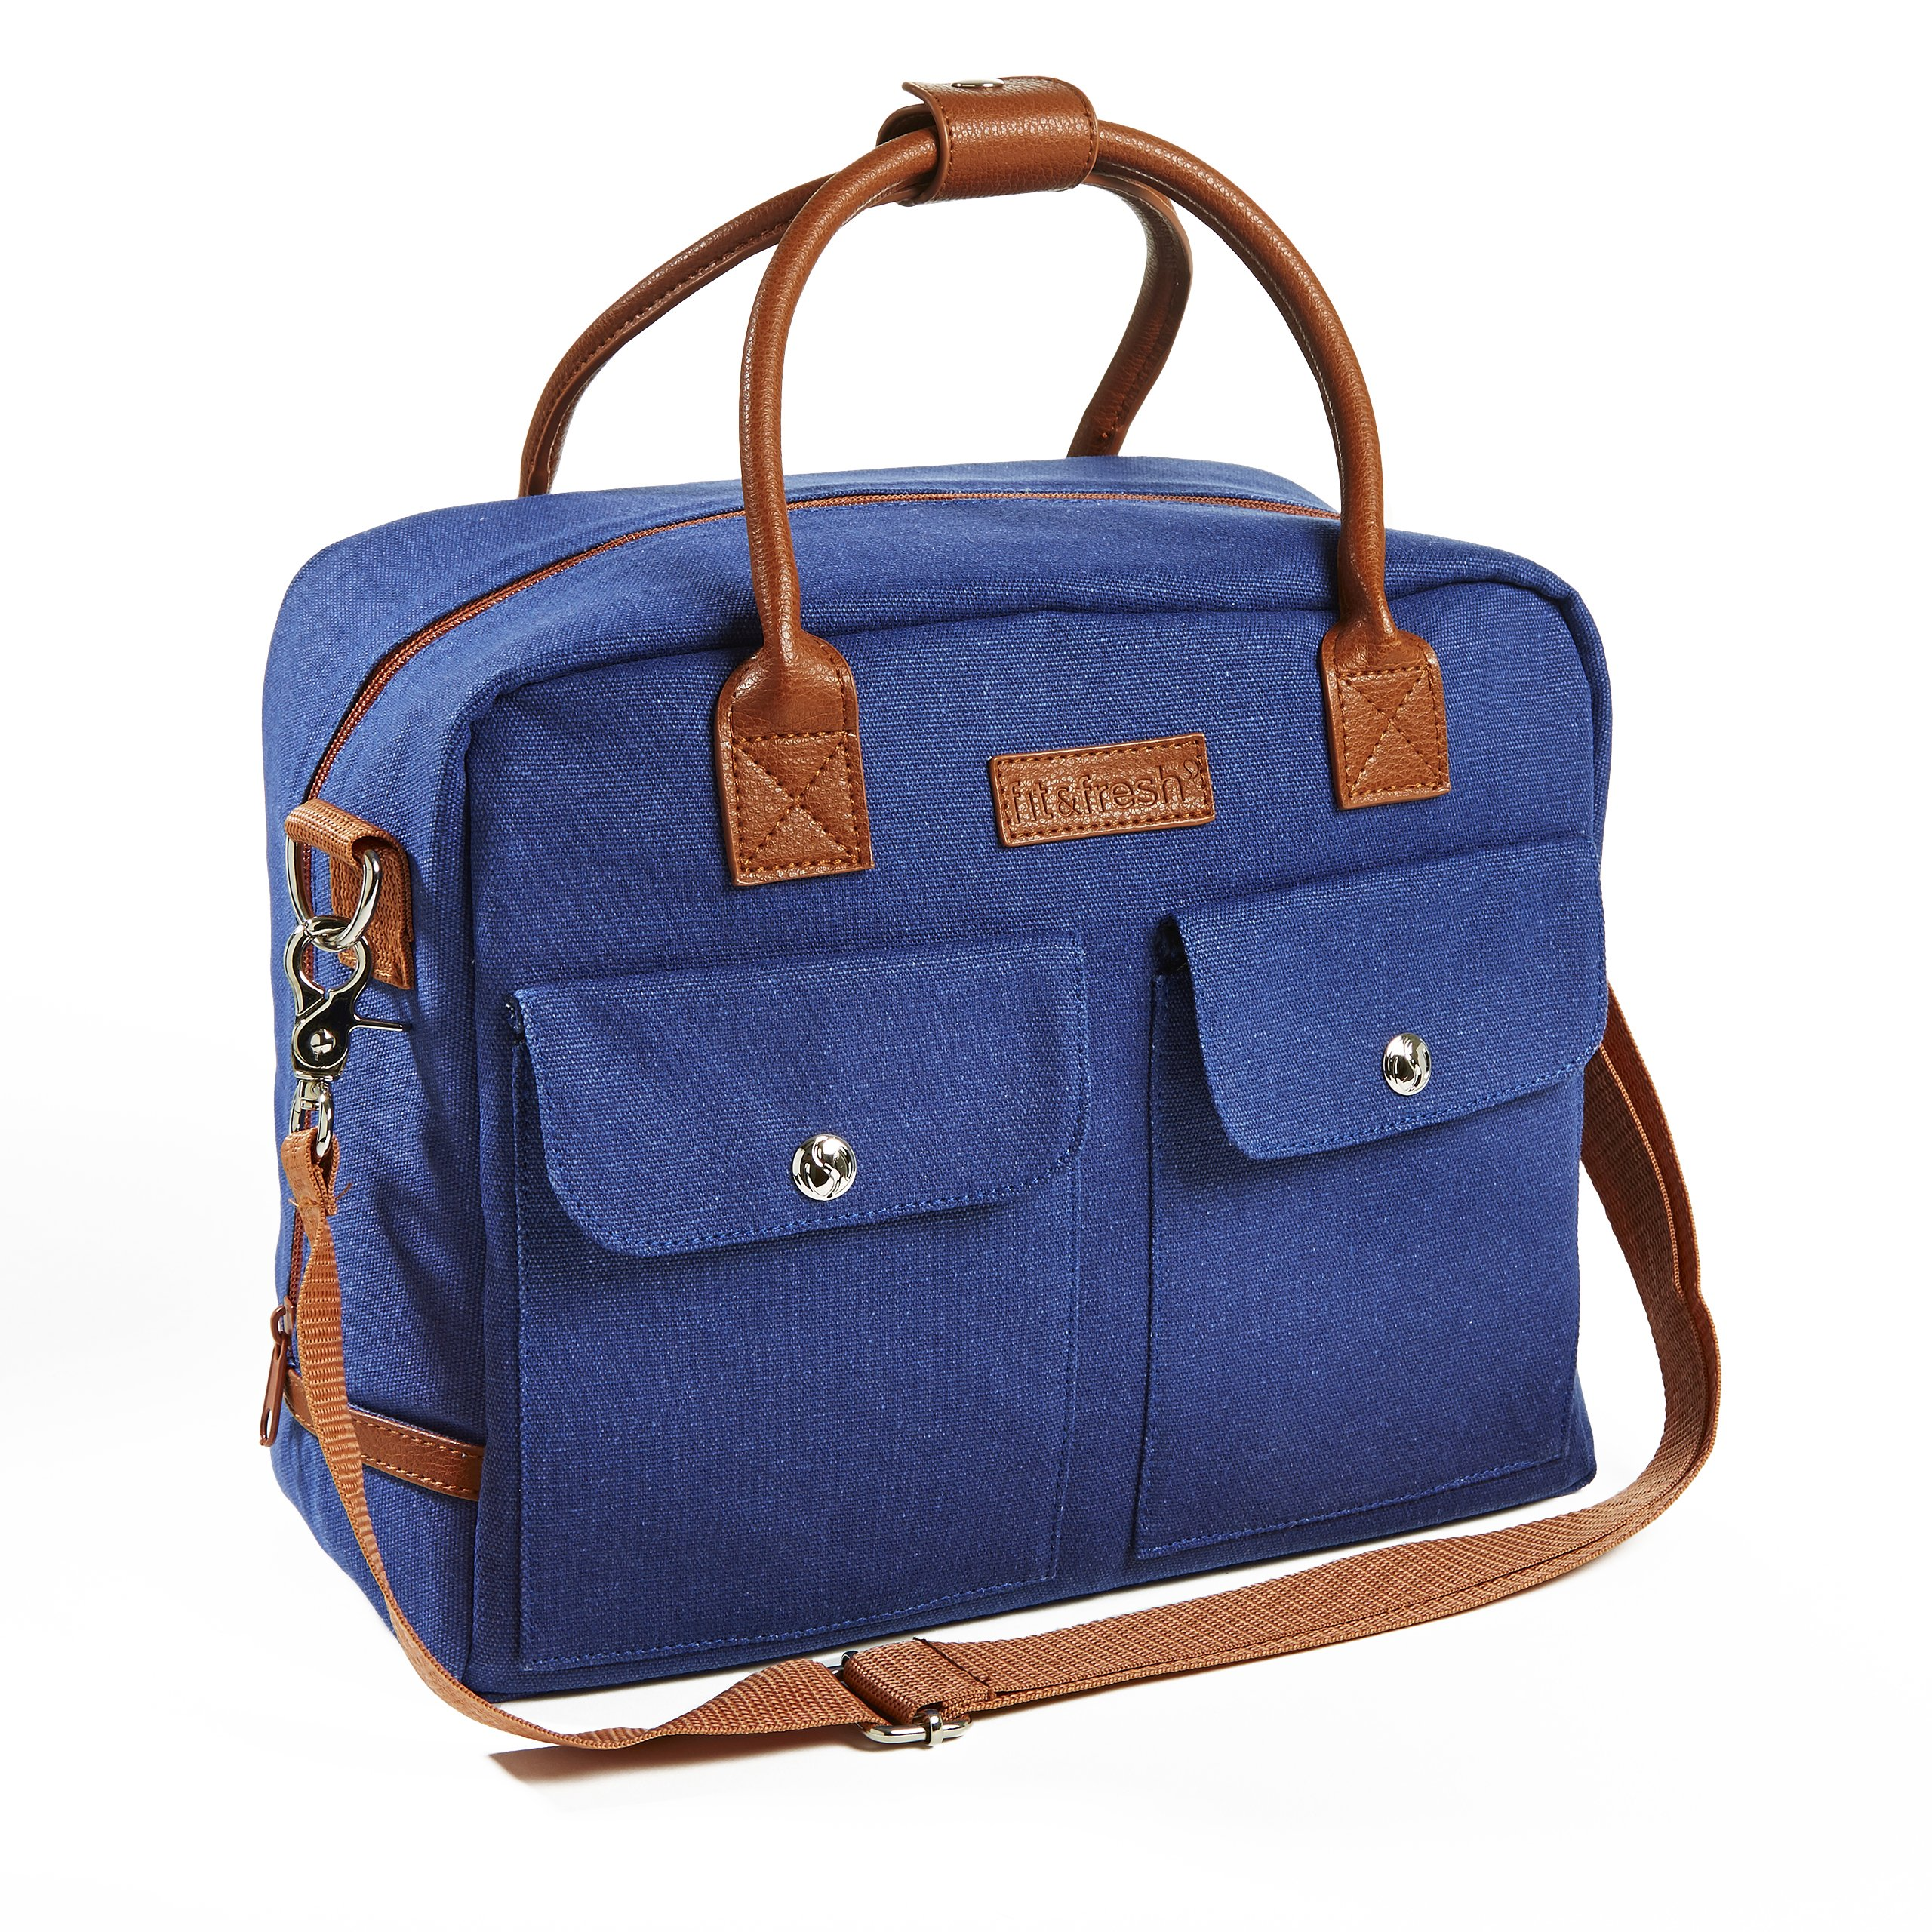 Fit & Fresh Margene Messenger Style Lunch Bag for Women, Insulated Tote for Travel, Work, School, Navy with Brown Trim